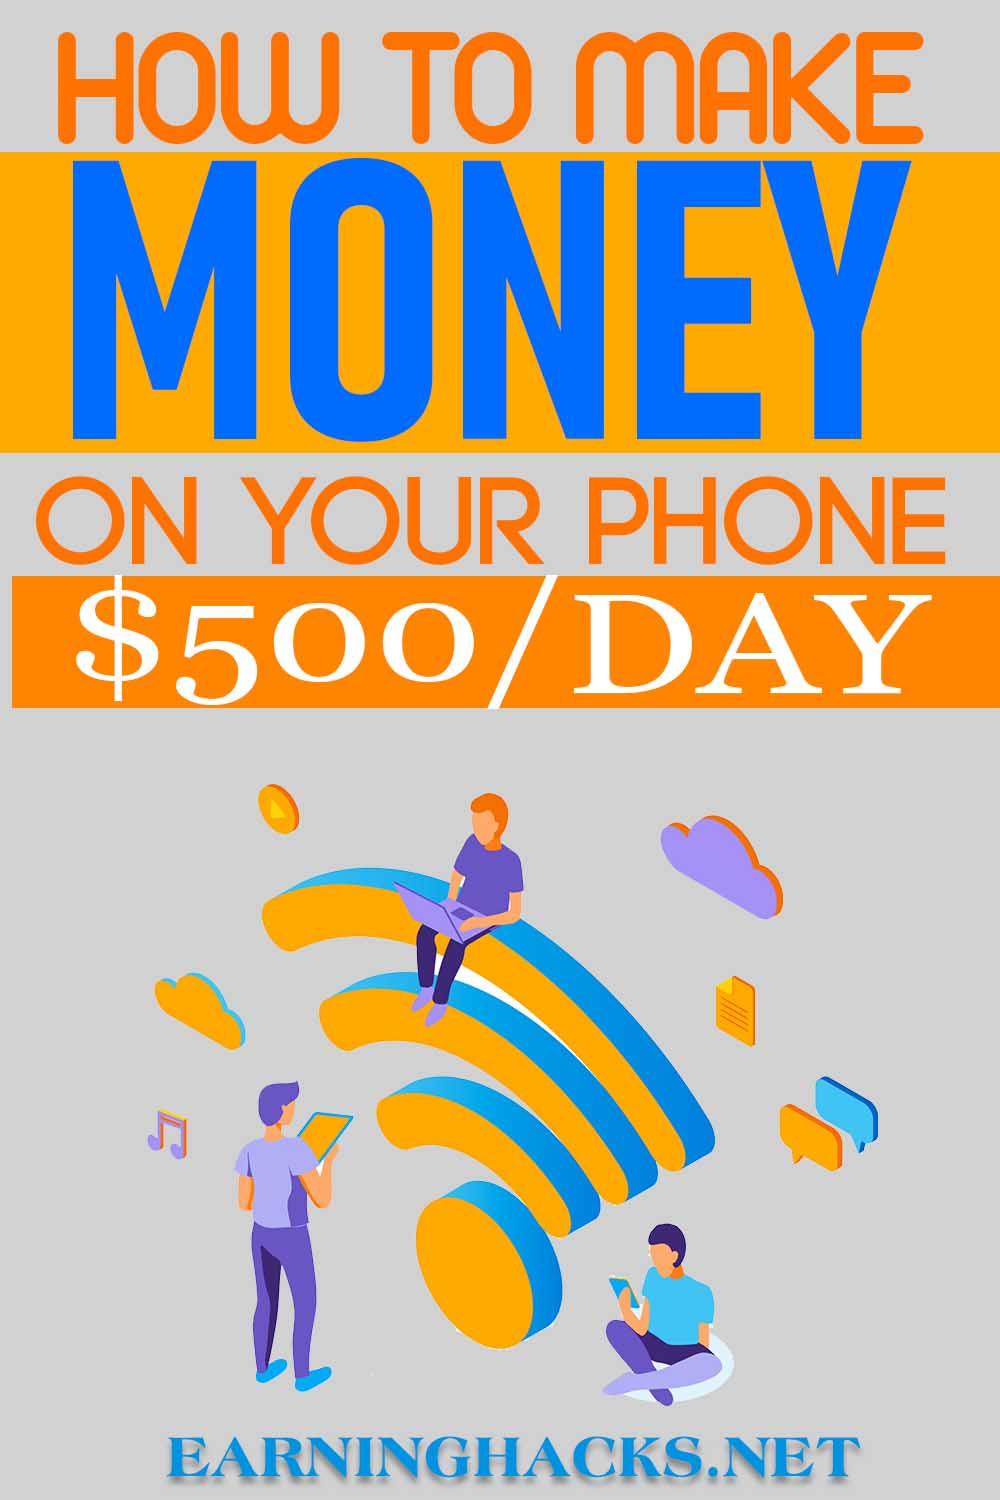 How to Make Money On Your Phone?